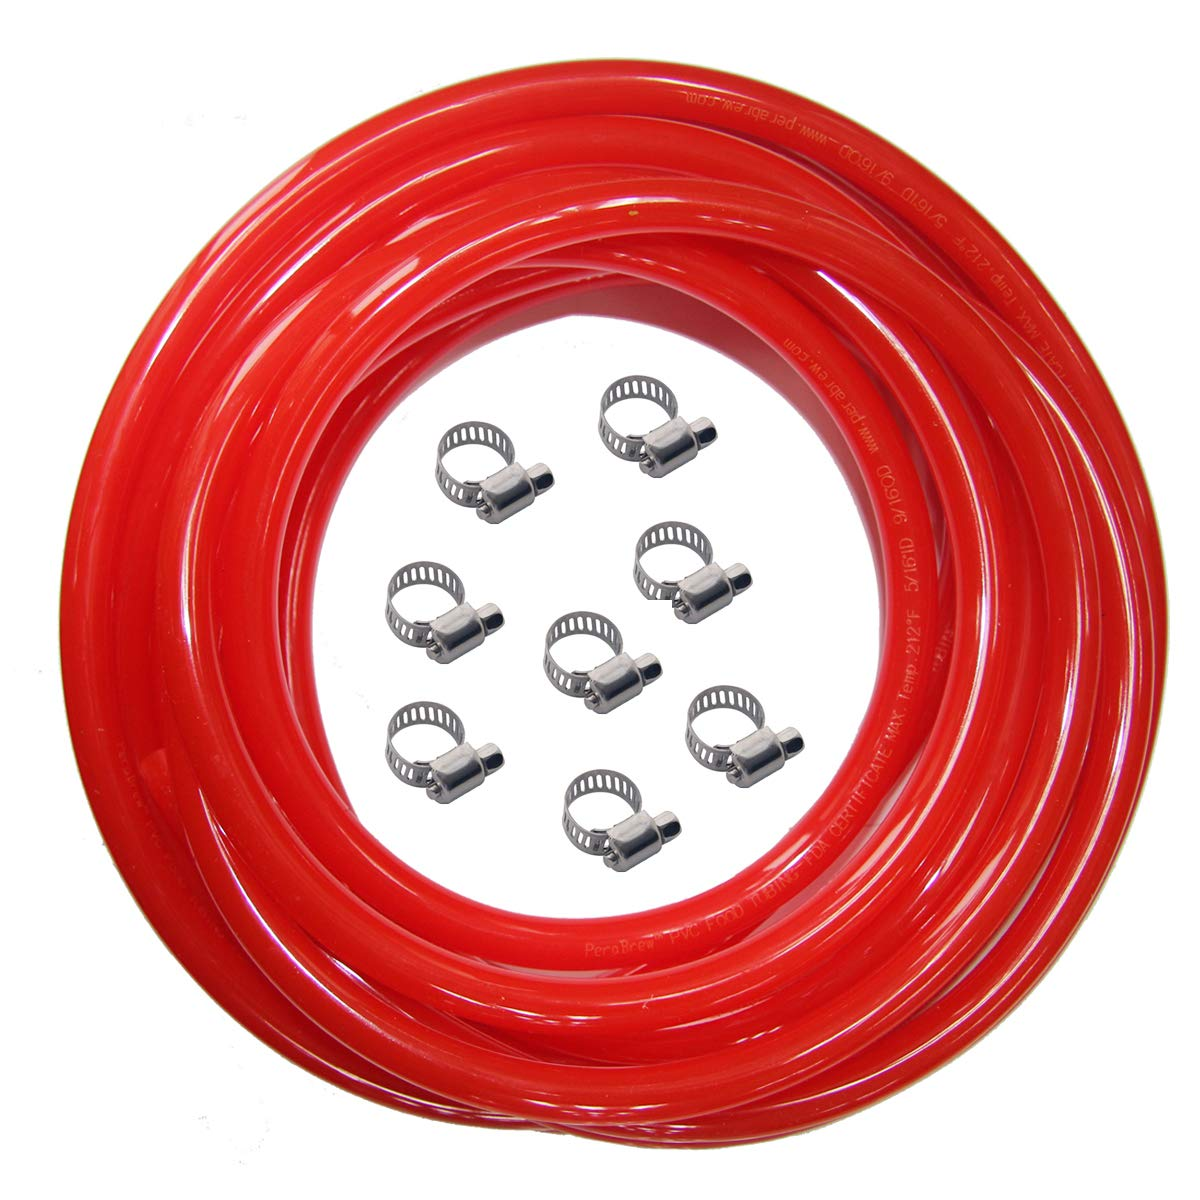 Red Gas Line Air Hose - 25ft Length CO2 Tubing Hose ID 5/16 inch OD 9/16 inch,Include 8 PCS Free Hose Clamps, Used for Draft Beer Home Brewing by LUCKEG (Image #1)